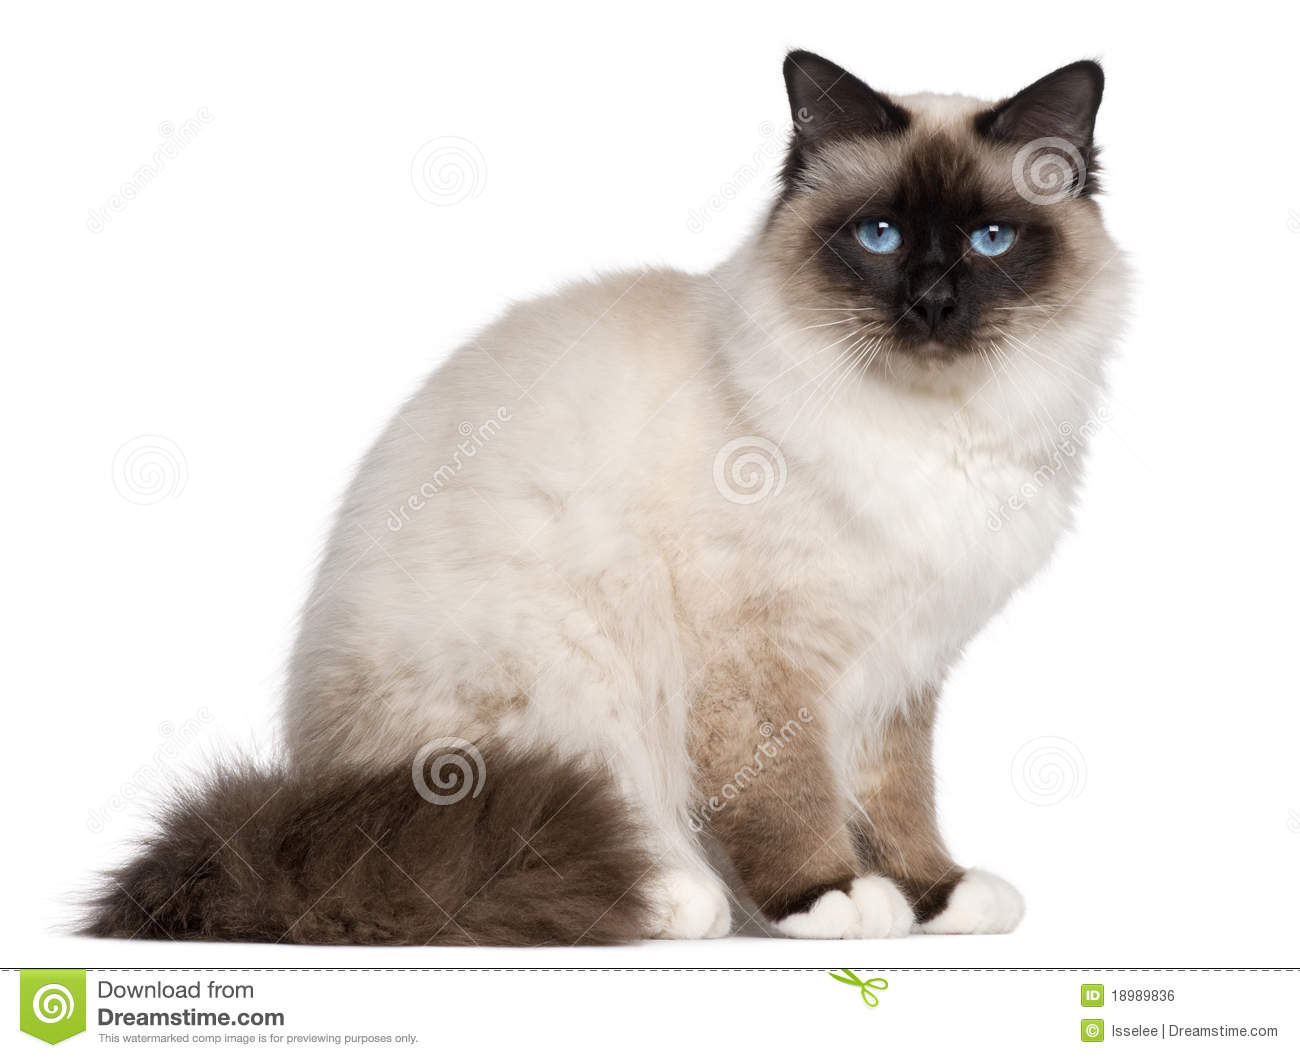 Royalty Free Image Old People Cat